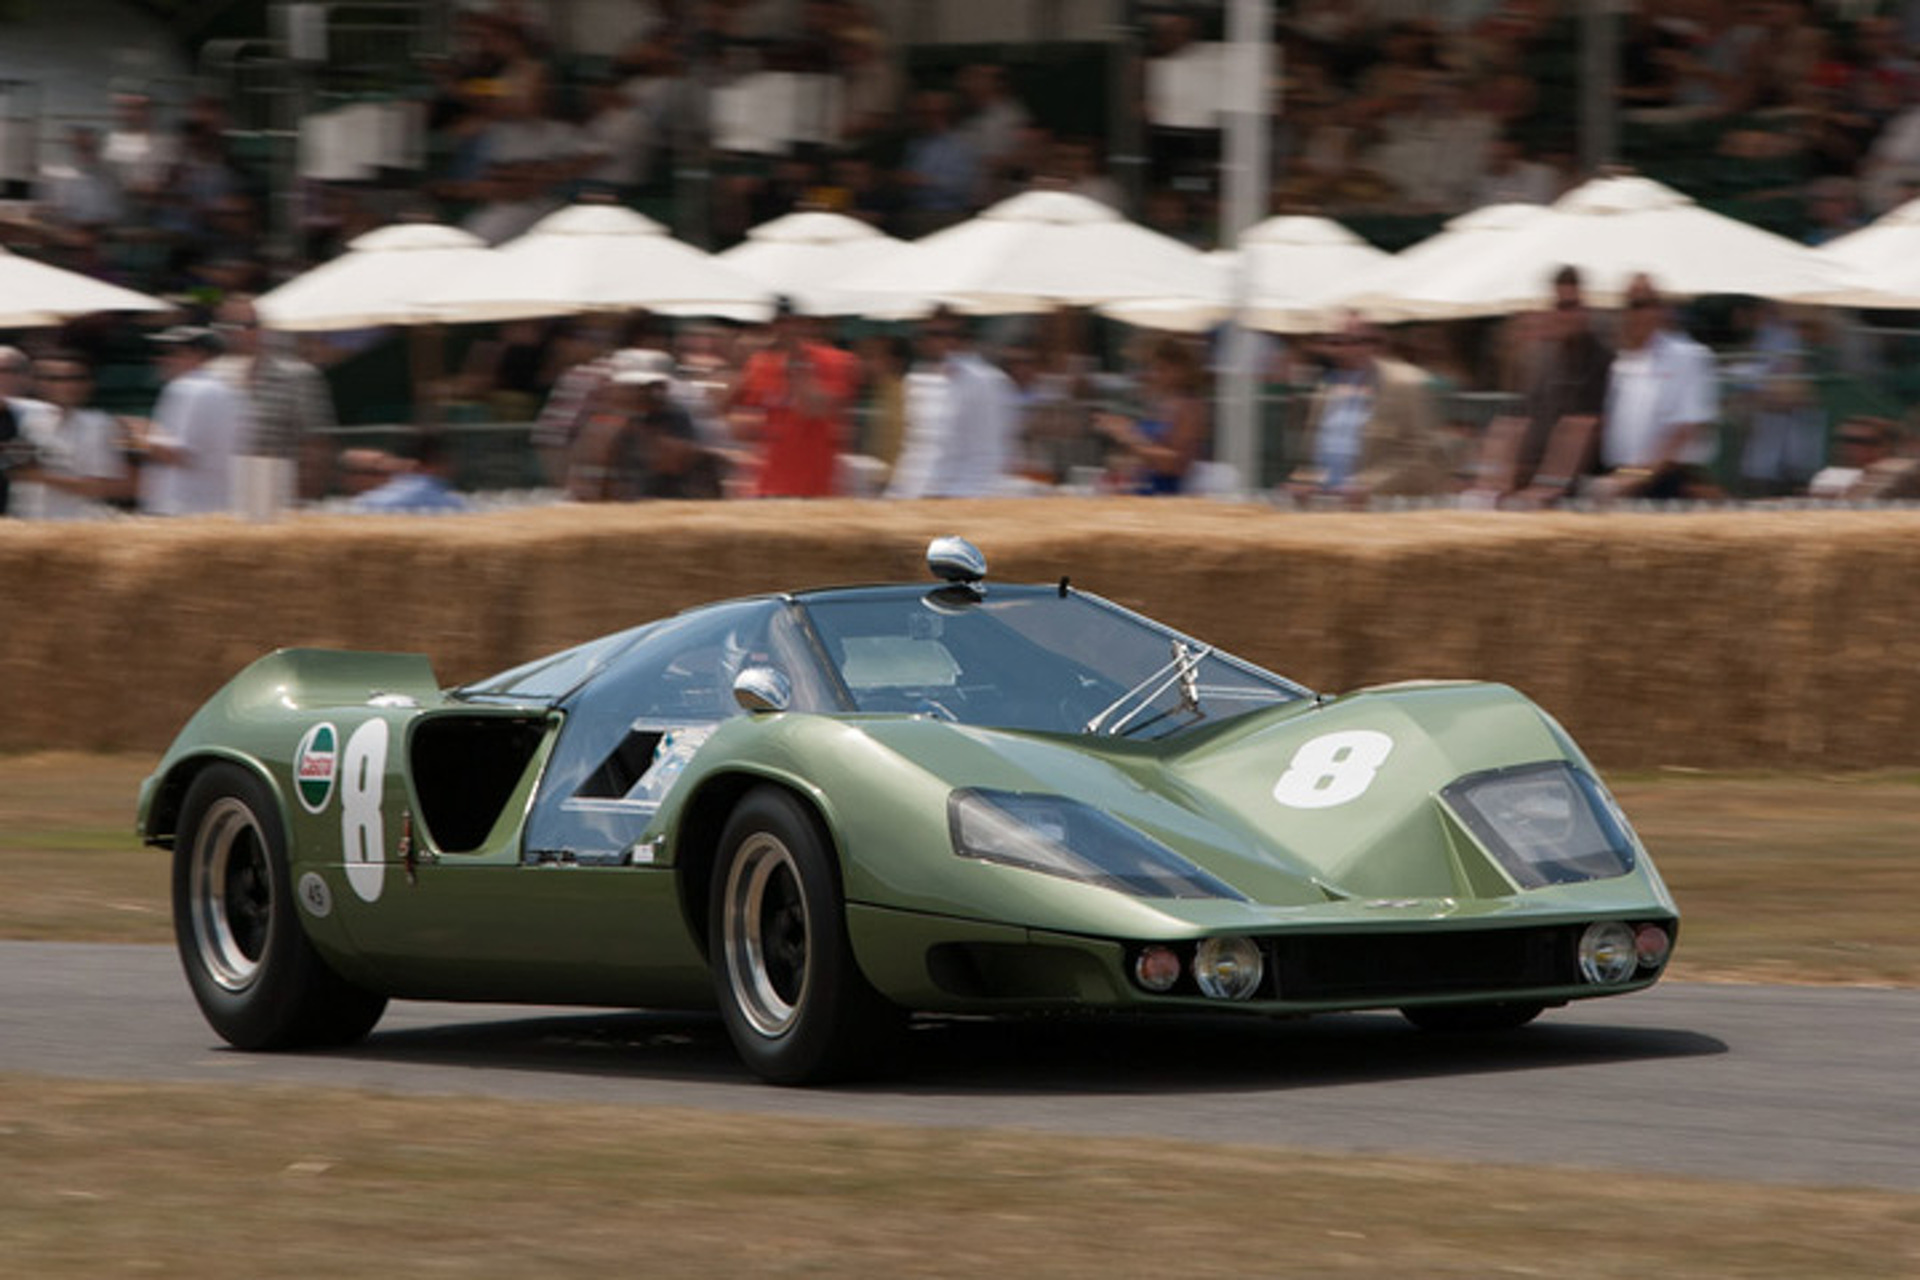 1968-marcos-mantis-xp-a-car-that-just-wasnt-meant-to-race.jpg